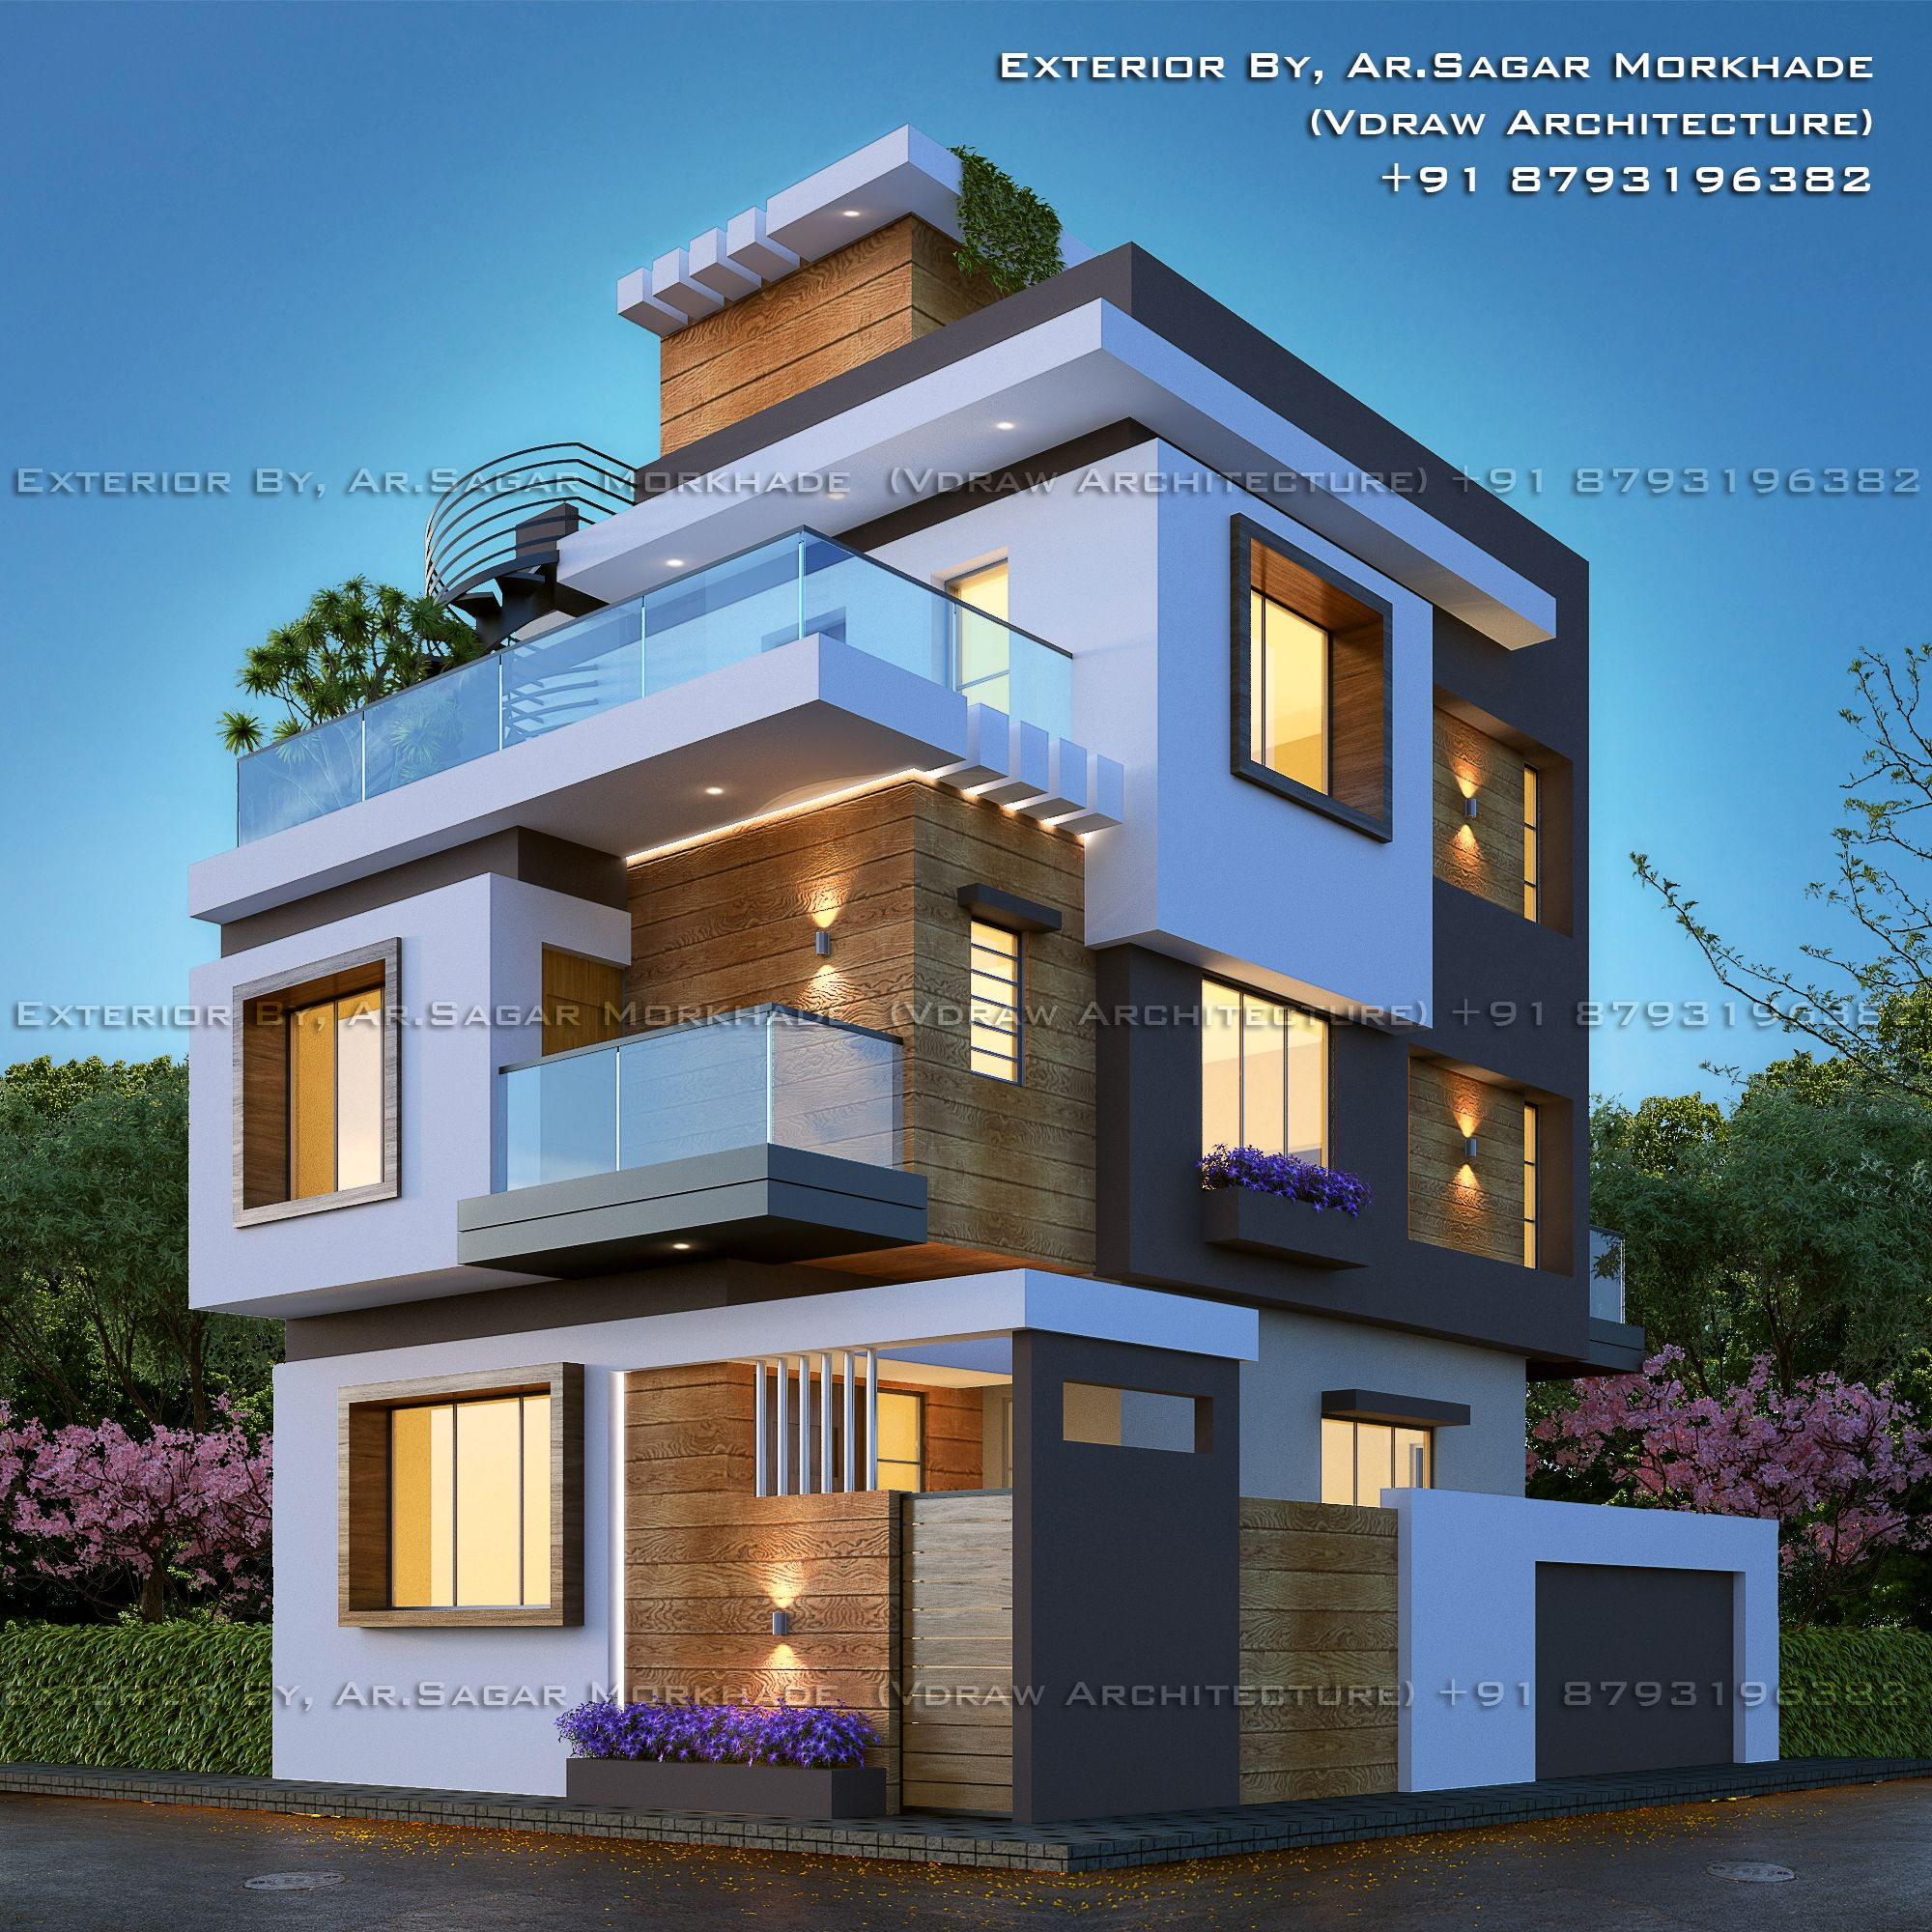 Modern Residential House Bungalow Exterior By Ar: Residential Building Vdraw Architecture